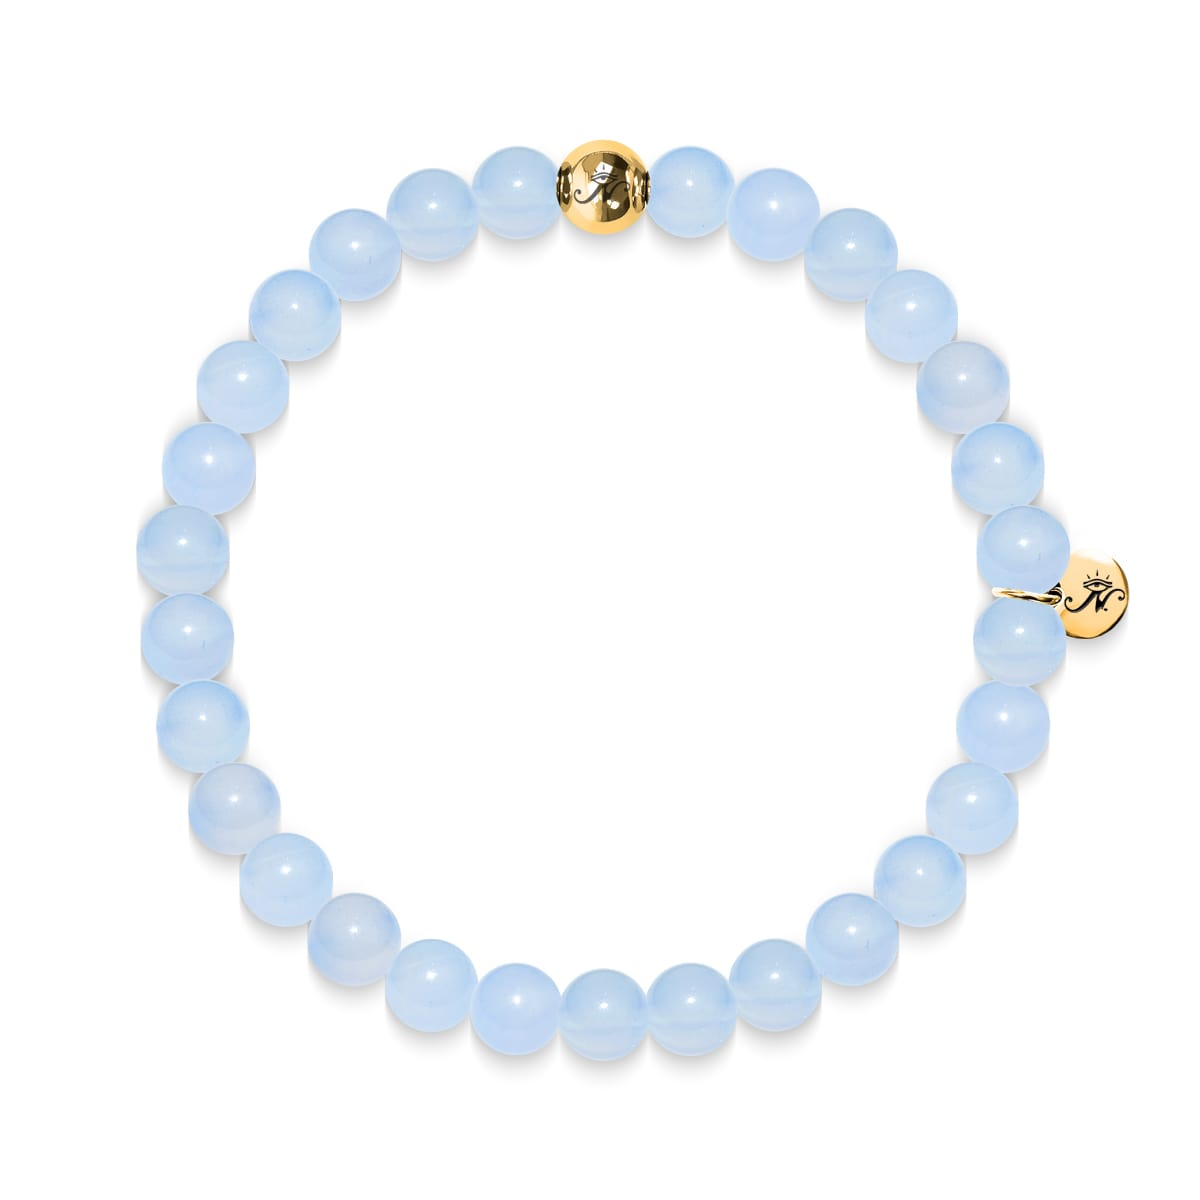 Pureté | Bracelet aigue-marine Gold Essence